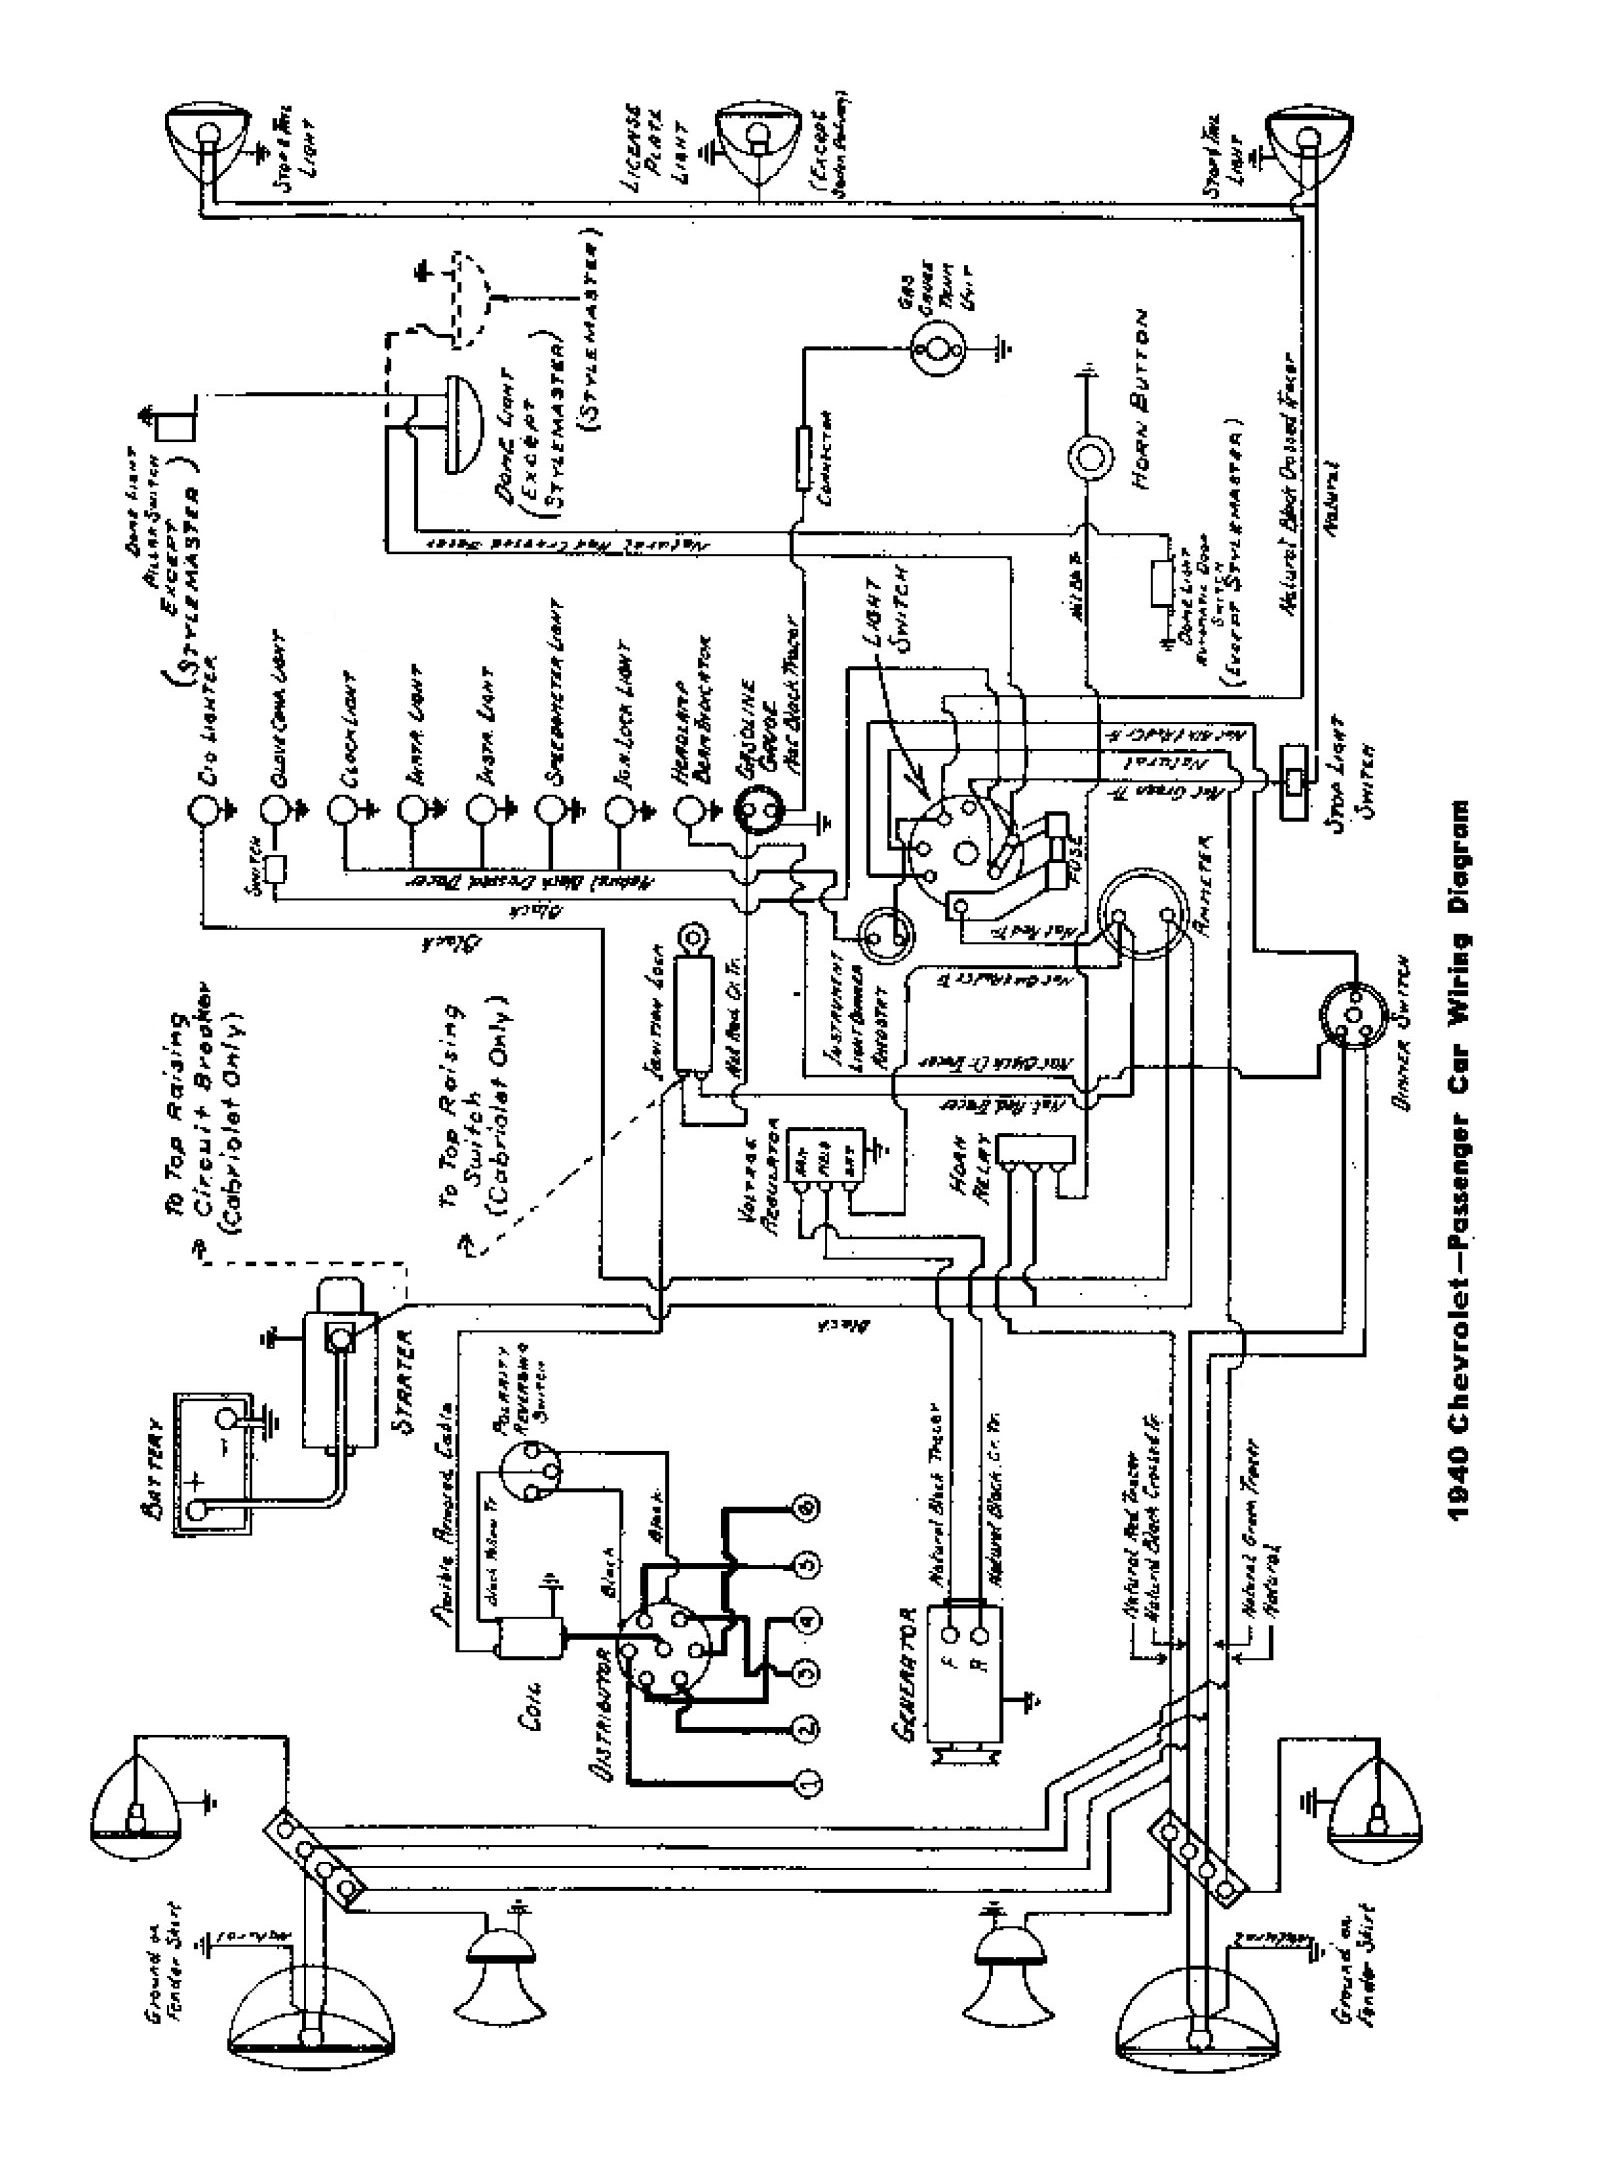 hight resolution of international truck wiring harness for 67 wiring diagrams konsult 1974 international truck wiring harness